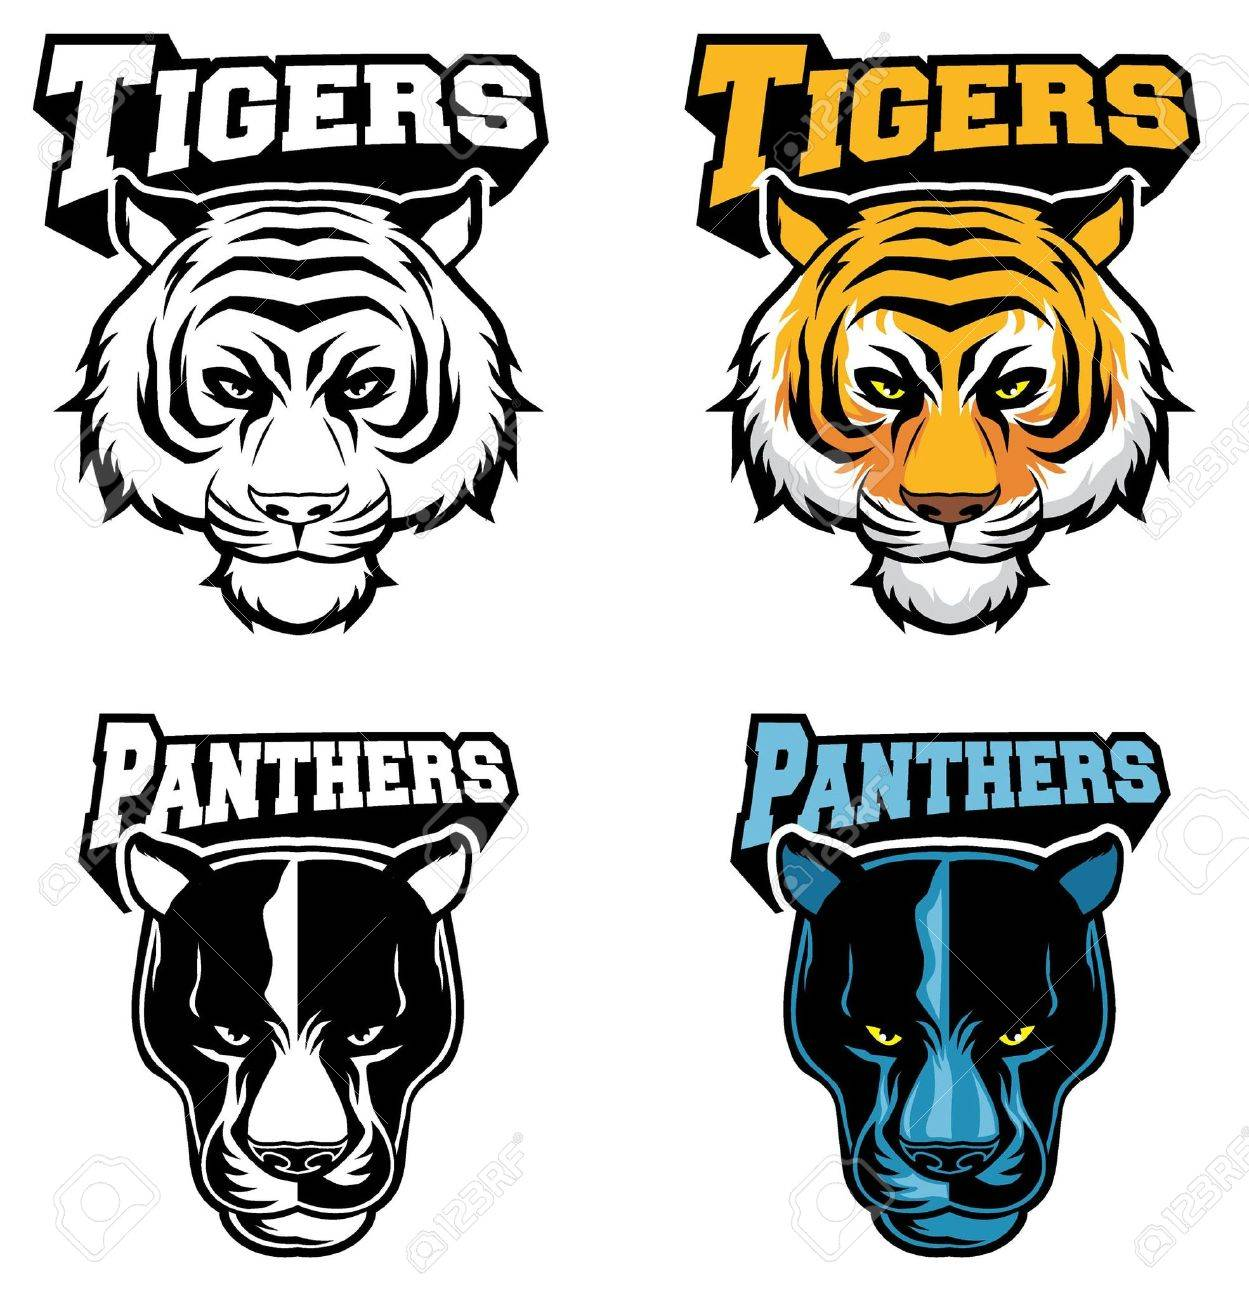 Tiger and panther head in vector - 18727080